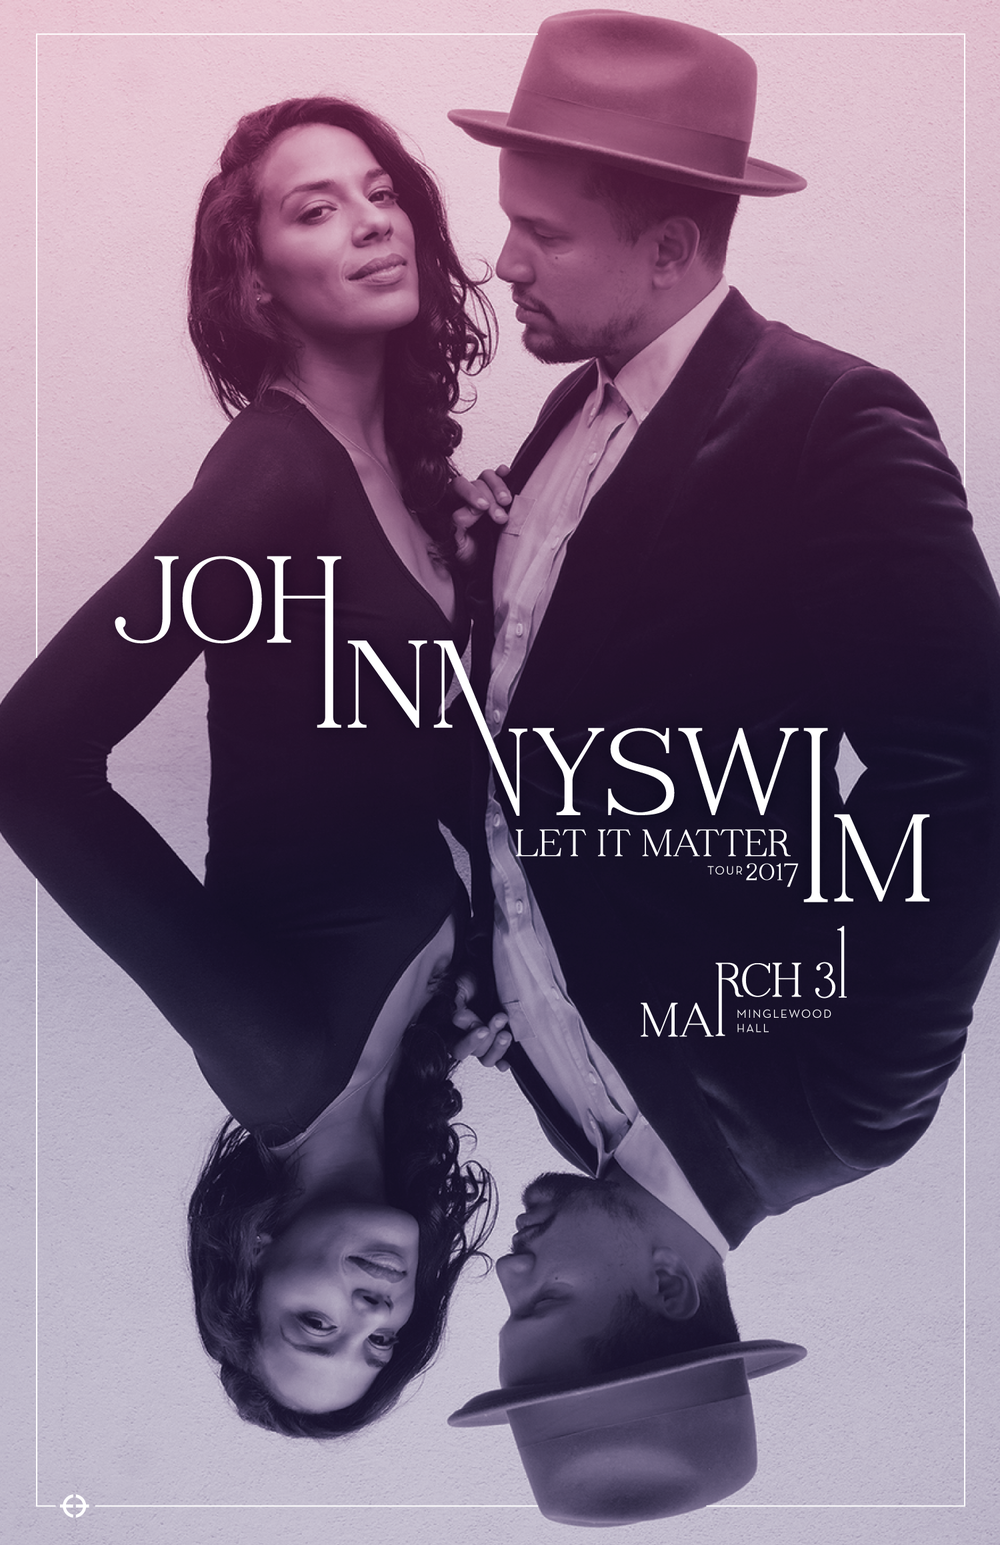 johnnyswim-web.png